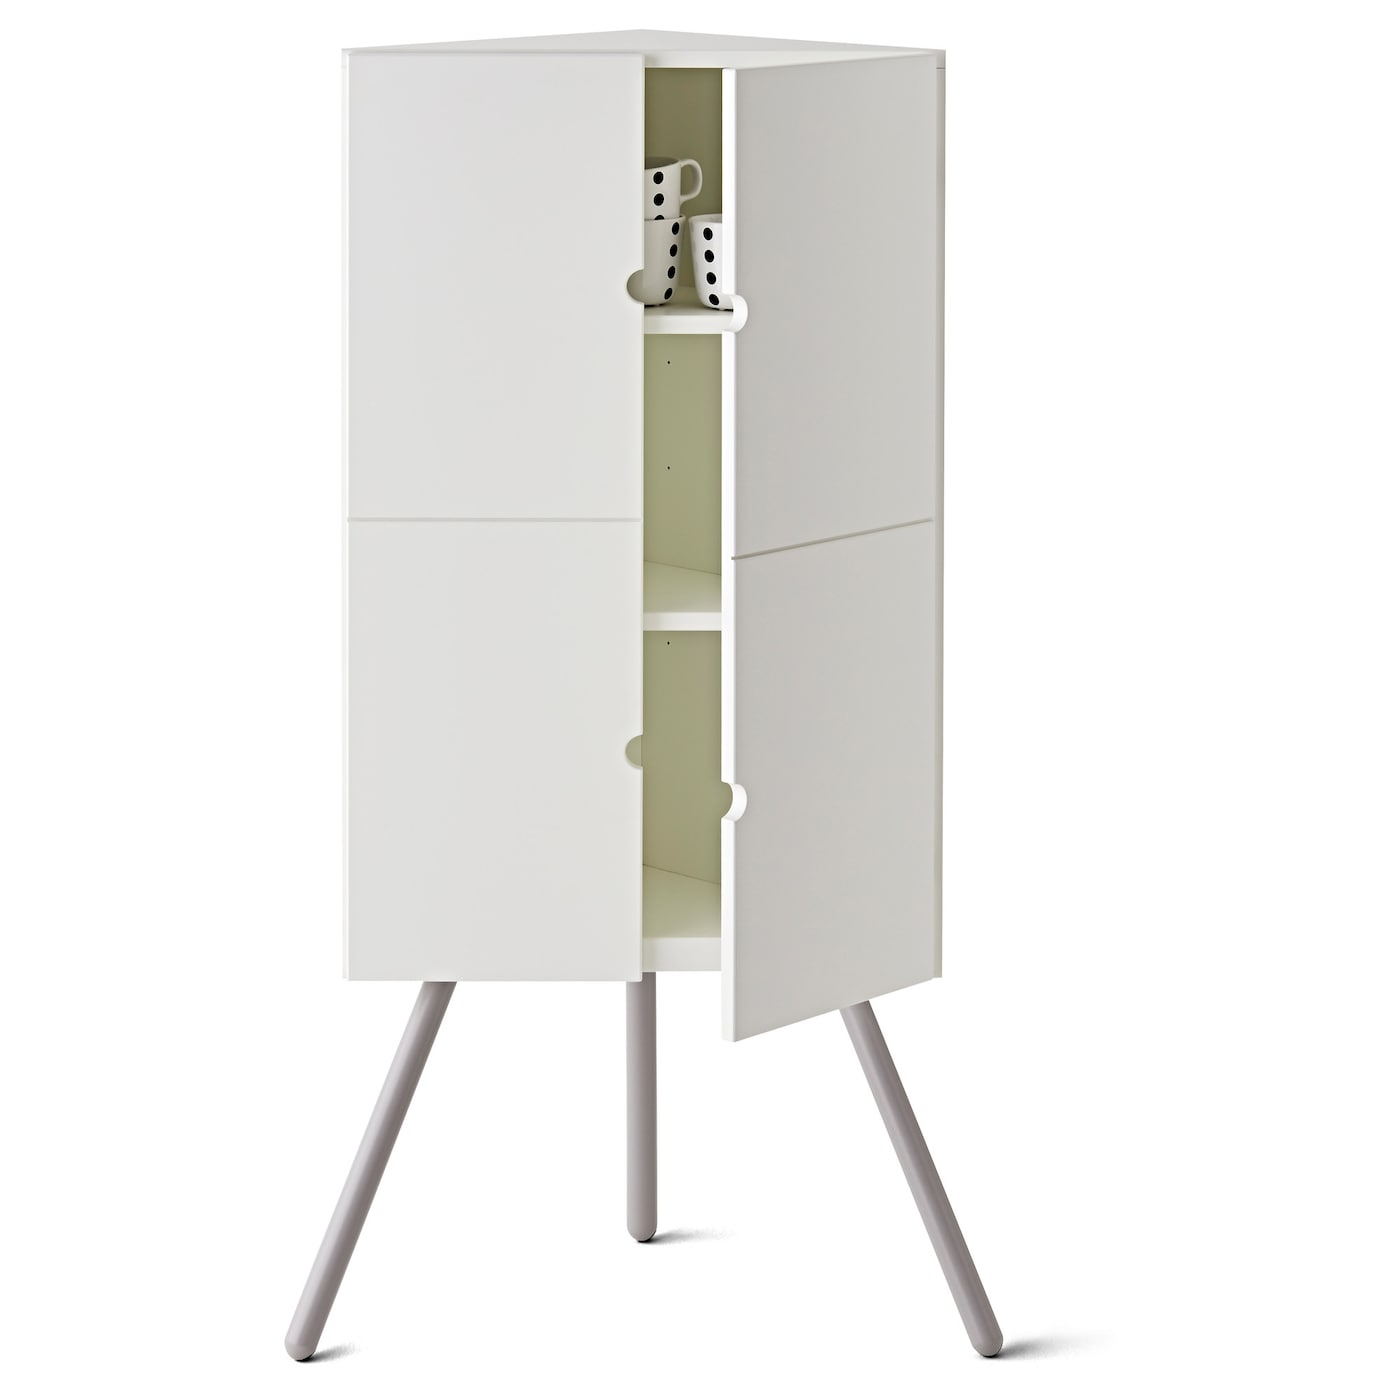 Ikea ps 2014 corner cabinet white grey 52x110 cm ikea for Ikea article number